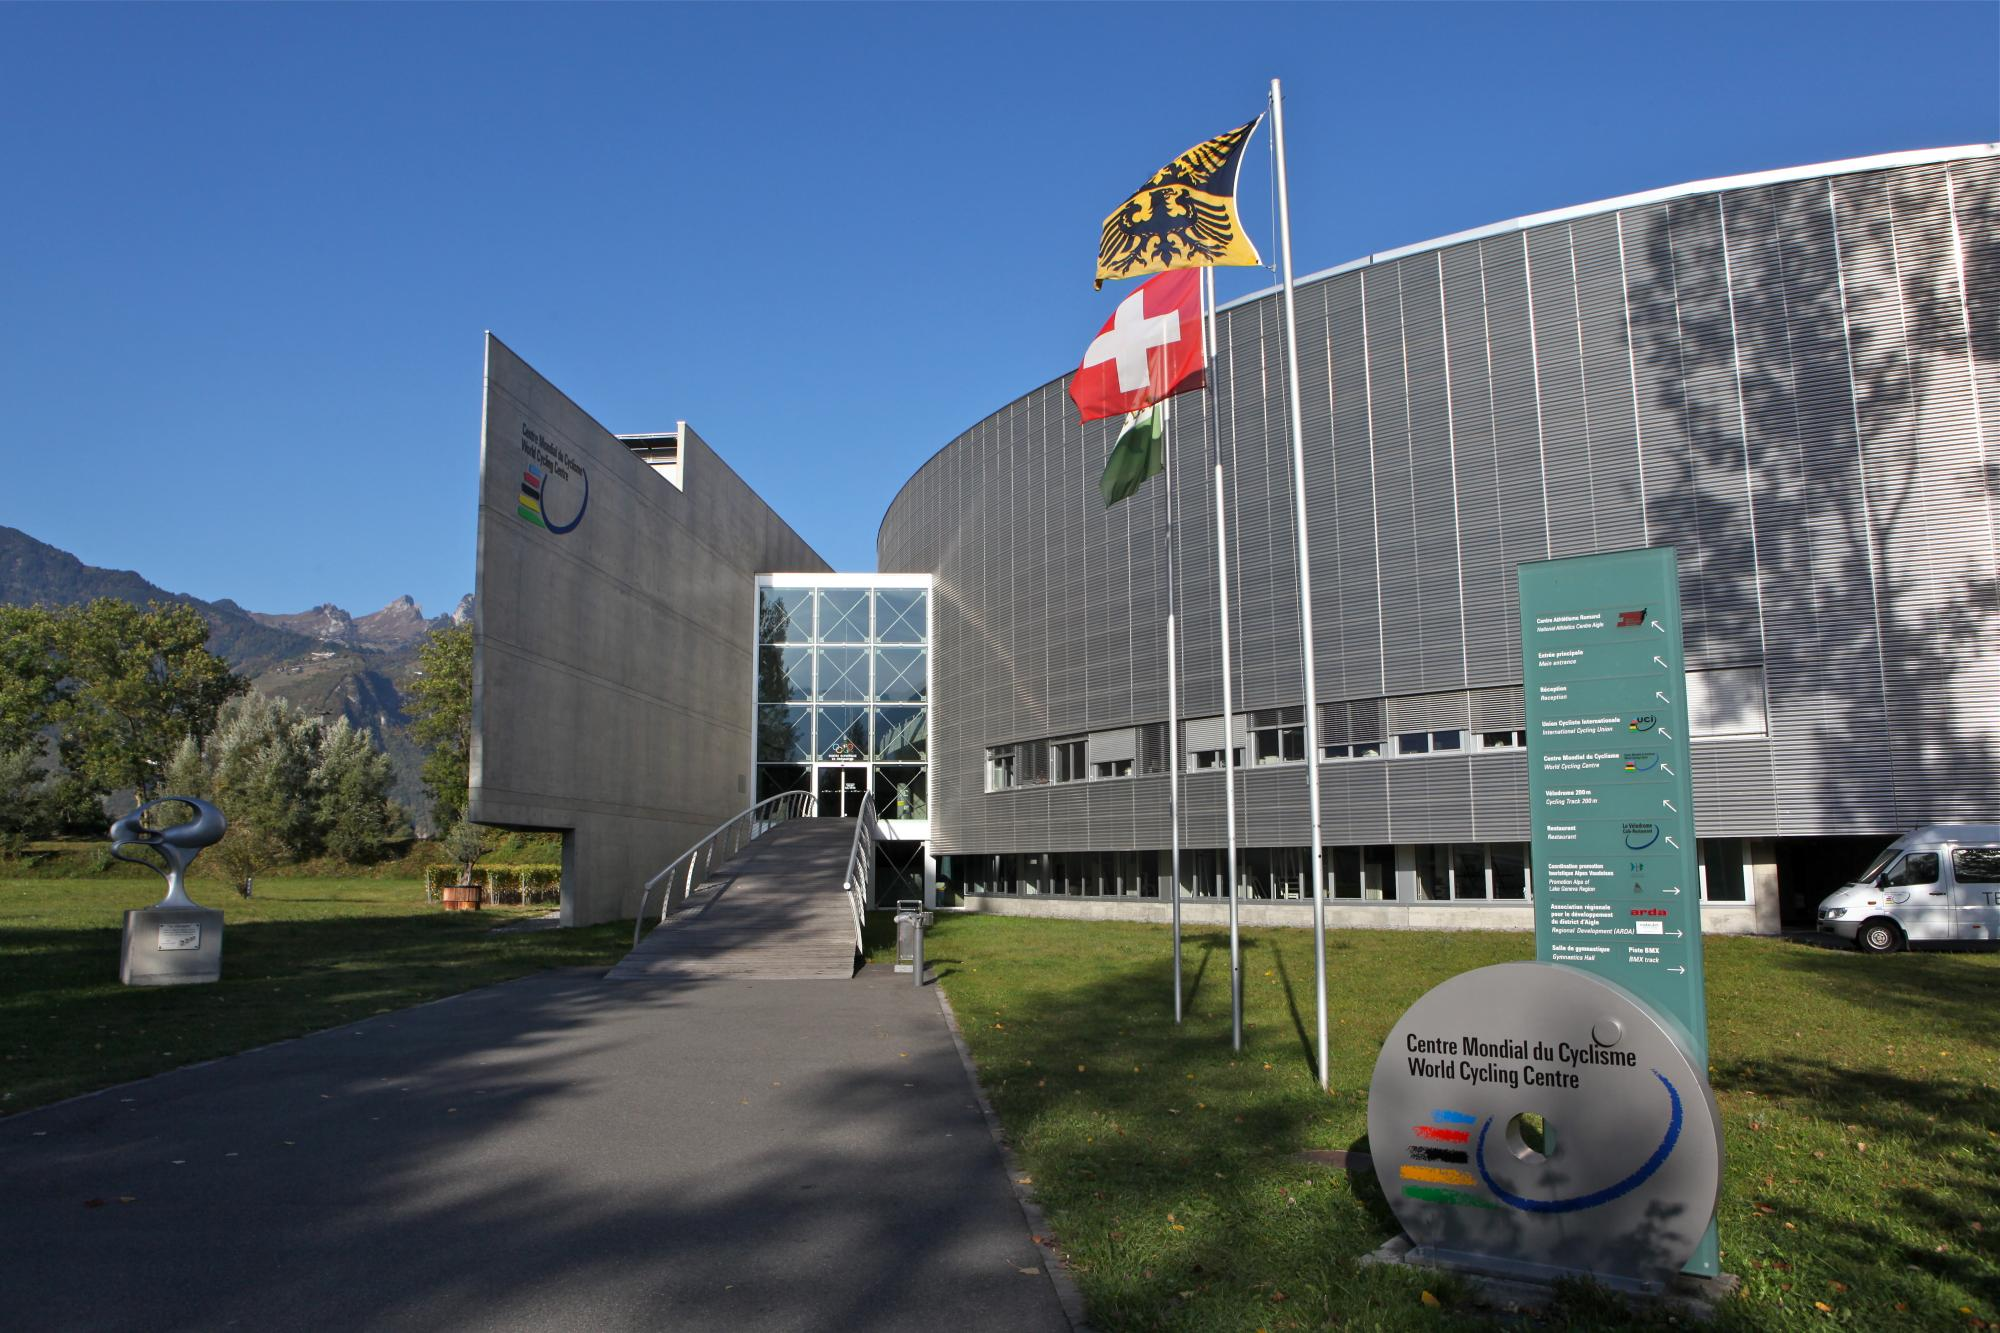 World Cycling Centre (WCC)